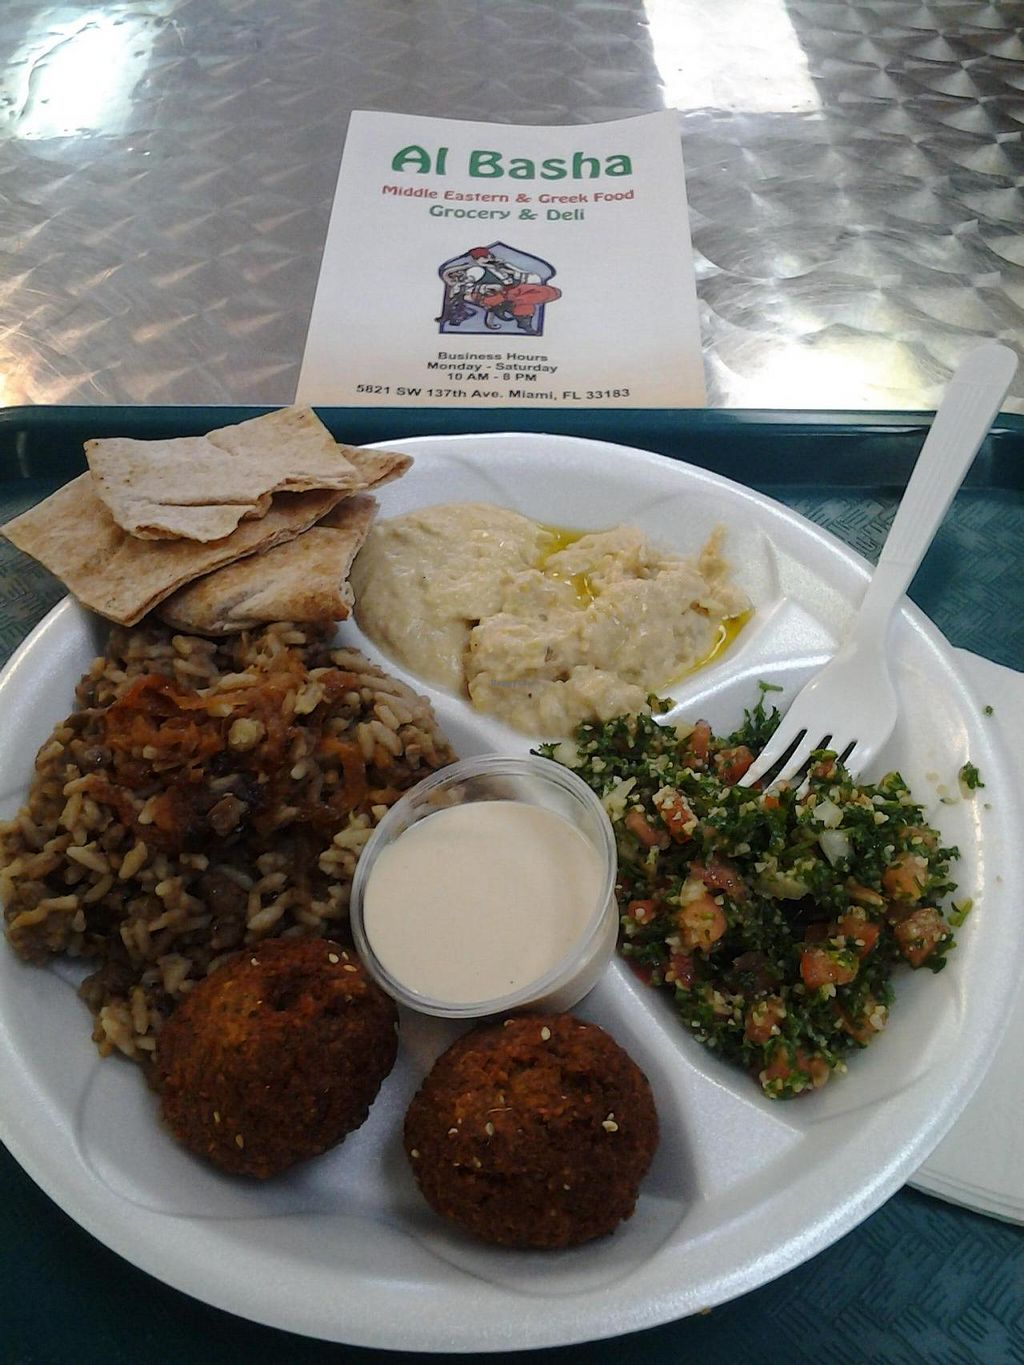 """Photo of El Basha Grocery and Deli  by <a href=""""/members/profile/Veggie%20Salvadorean"""">Veggie Salvadorean</a> <br/>This is the Veggie Combo Plate. Very tasty, but a shame they use Styrofoam <br/> July 26, 2014  - <a href='/contact/abuse/image/42883/75213'>Report</a>"""